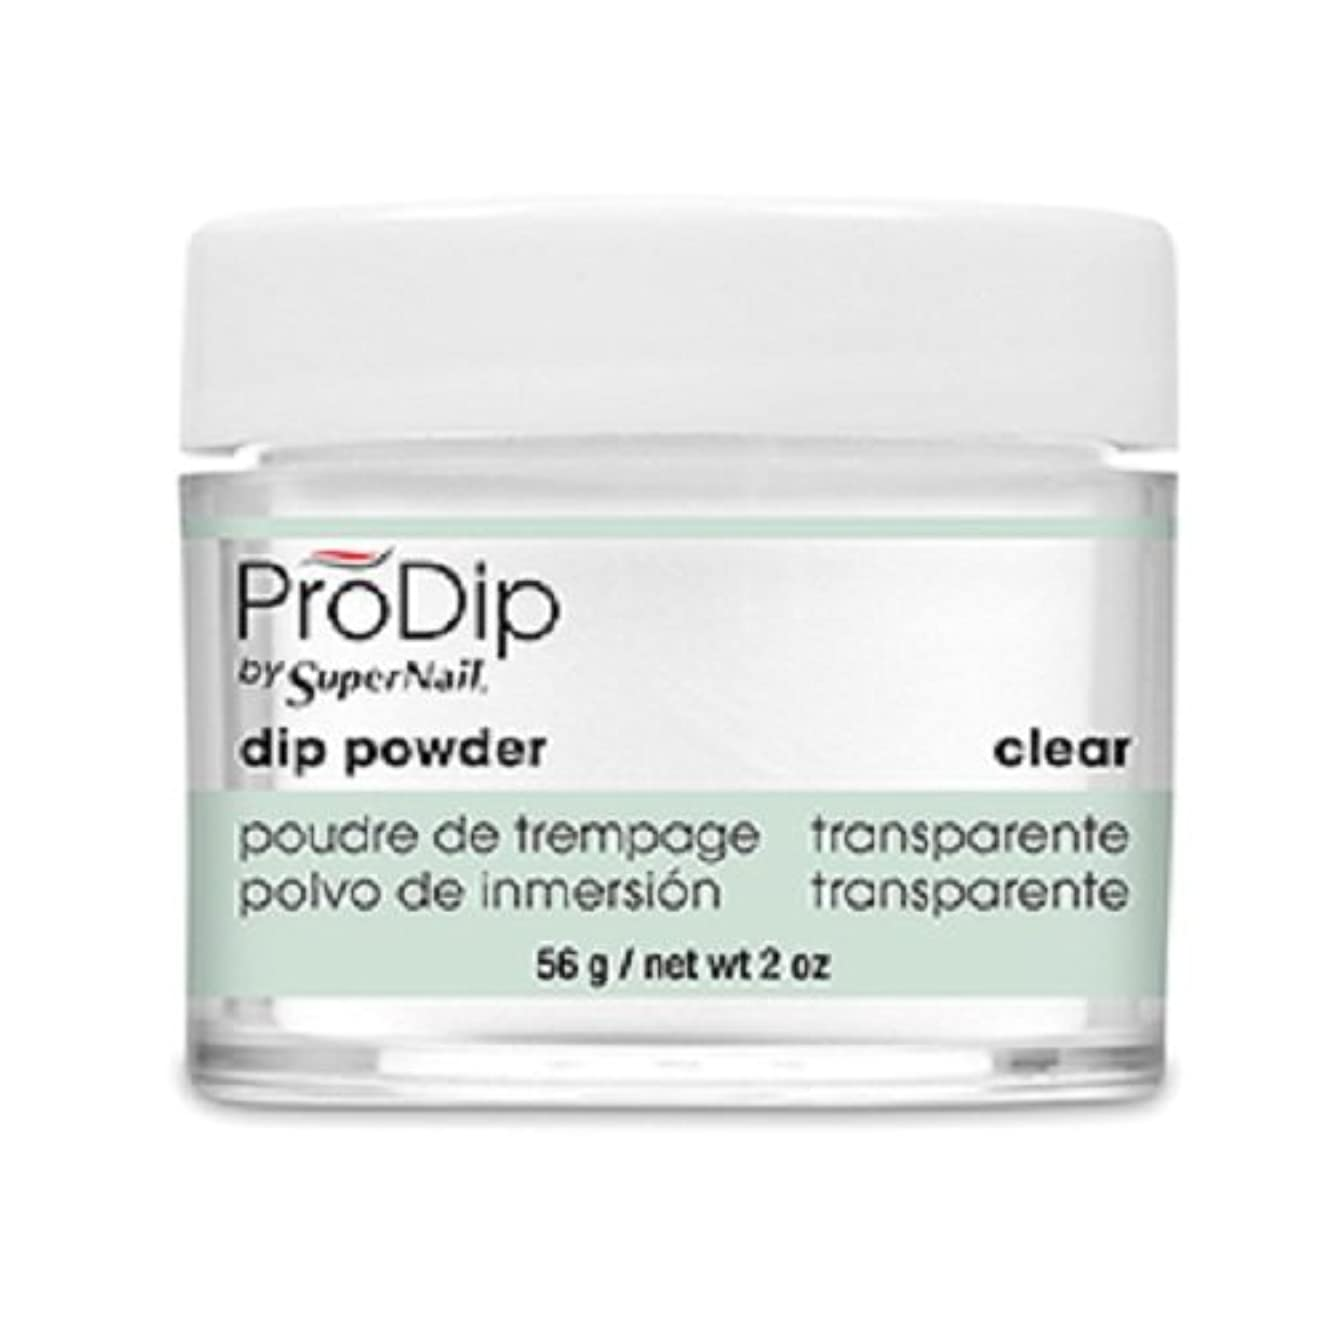 Supernail Prodip French Acrylic Dip Powder Clear, 2 Ounce